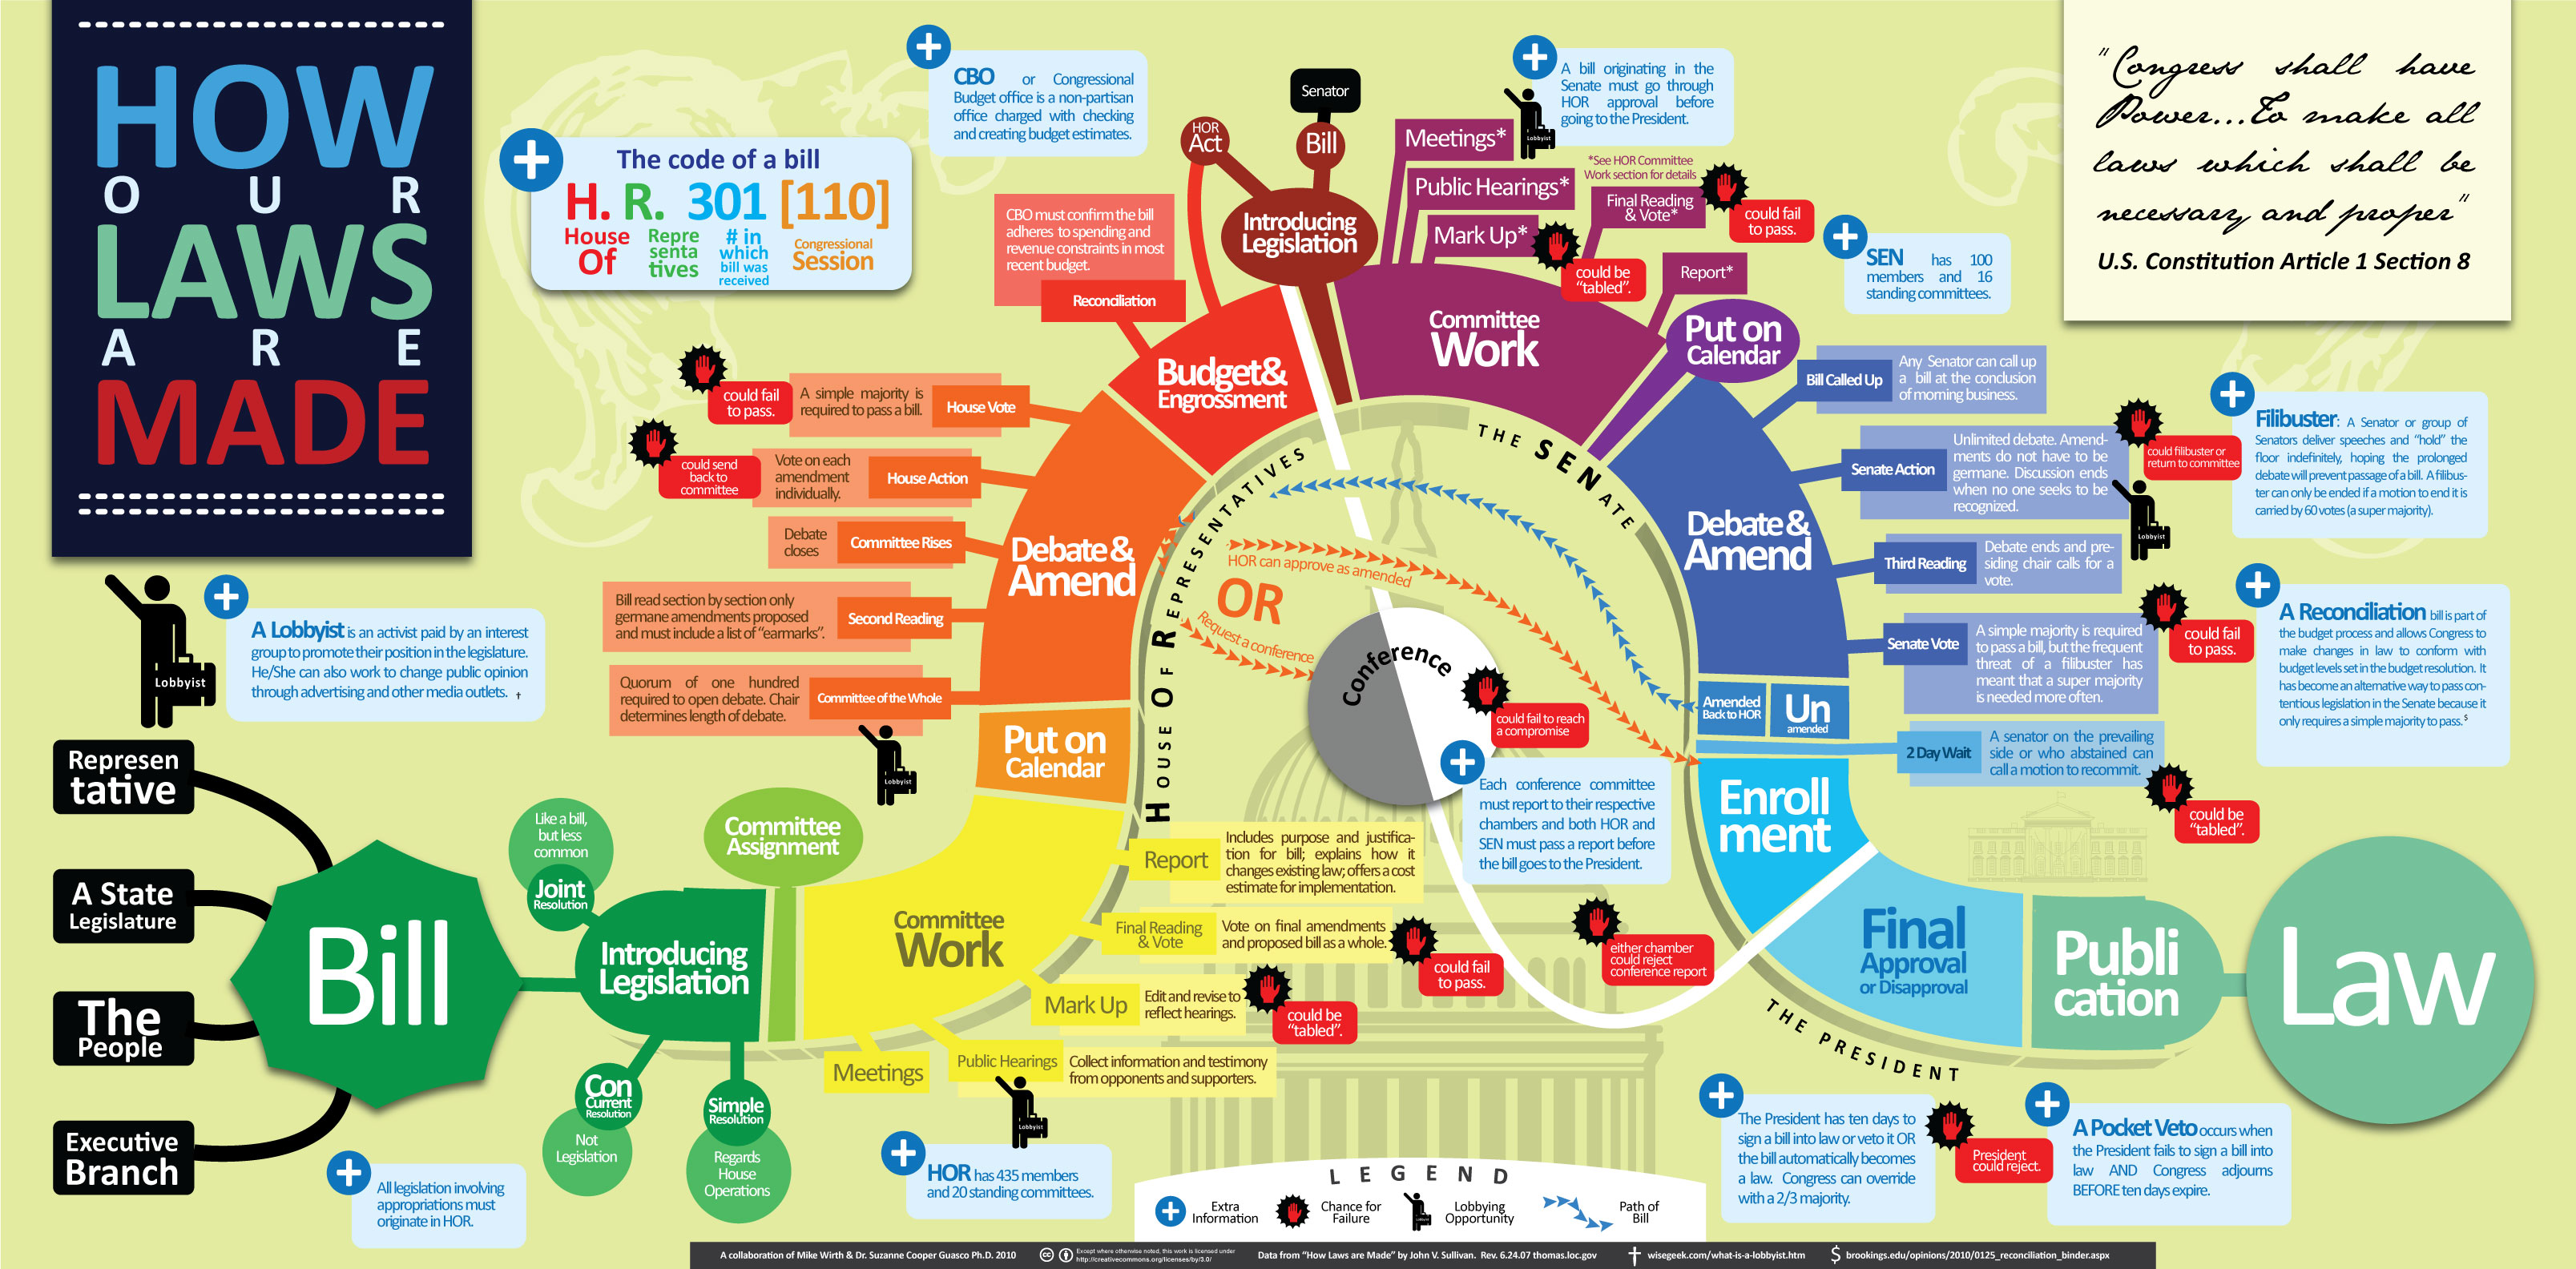 """How Our Laws Are Made"" infographic by Mike Wirth and Dr. Suzanne Cooper-Guasco"